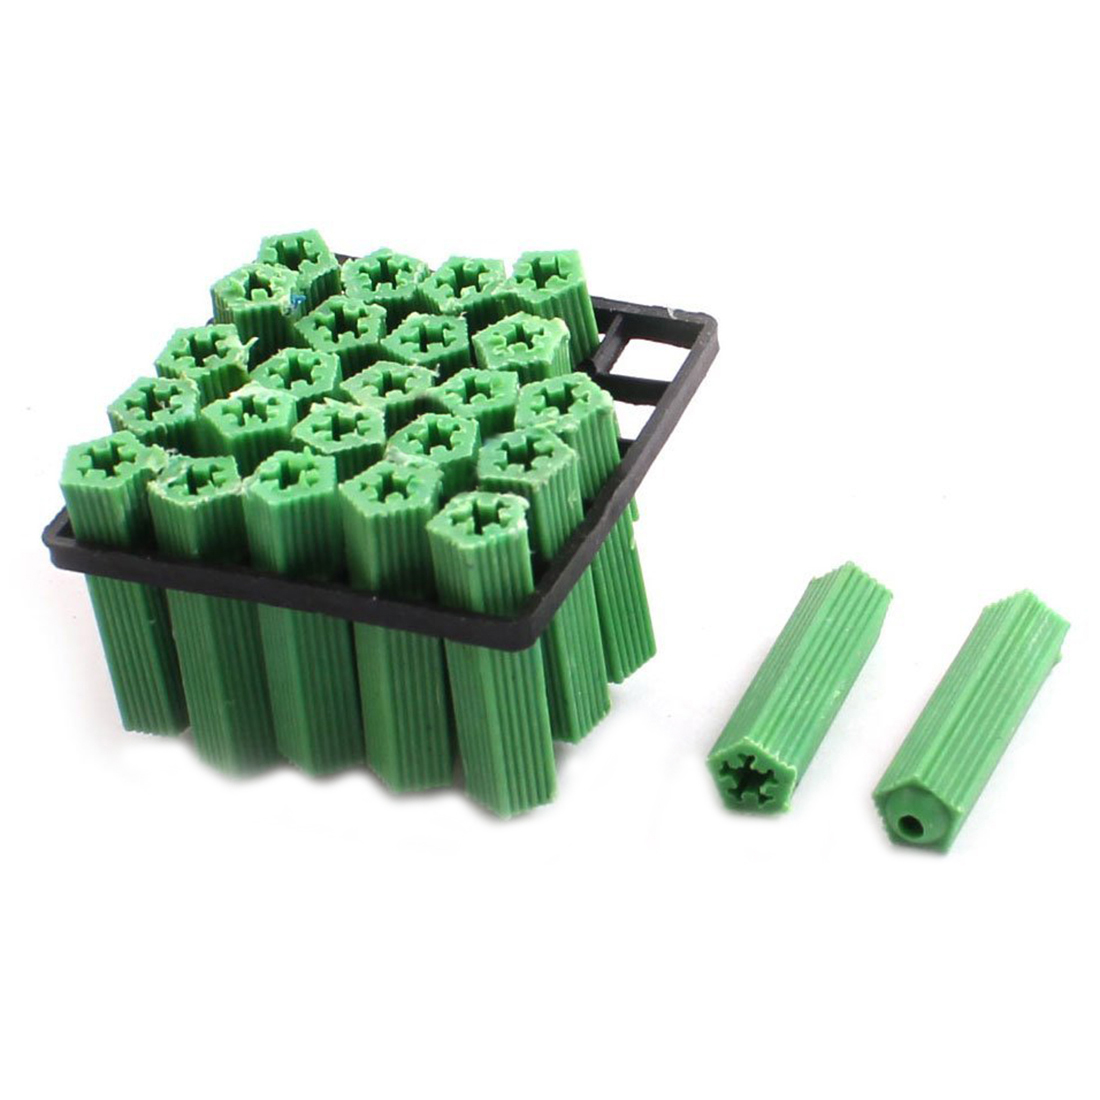 500 Pcs Green Masonry Screw Fixing Wall Anchor Plugs 6mm x 27mm500 Pcs Green Masonry Screw Fixing Wall Anchor Plugs 6mm x 27mm